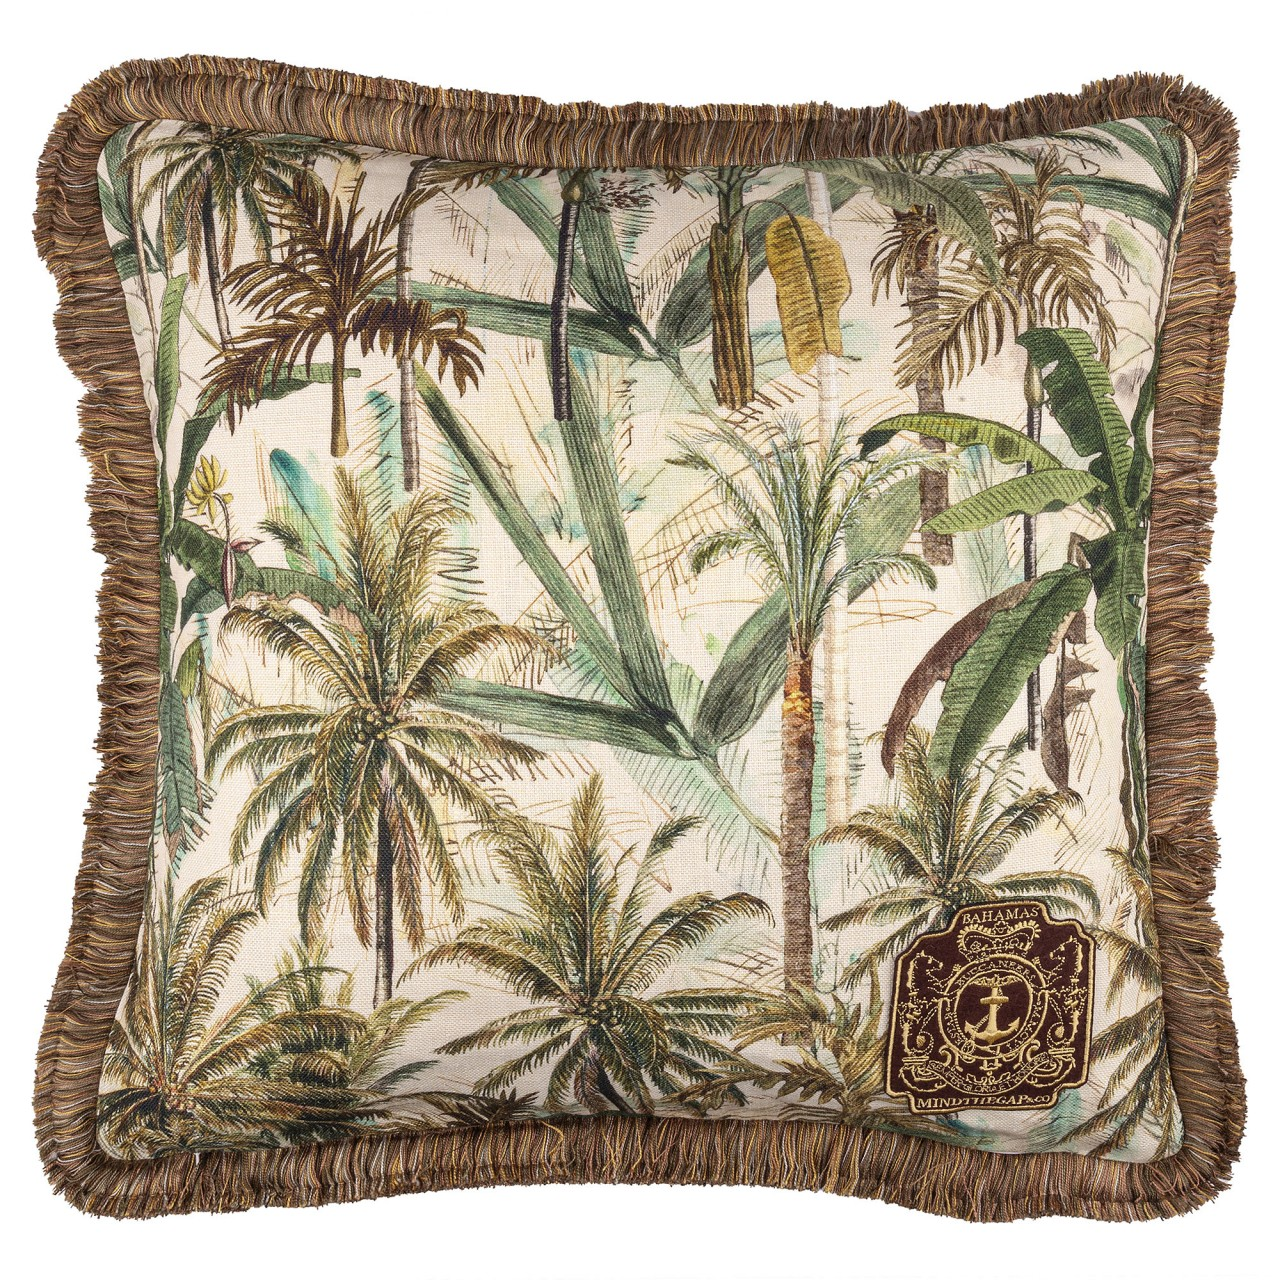 THE JUNGLE Cushion